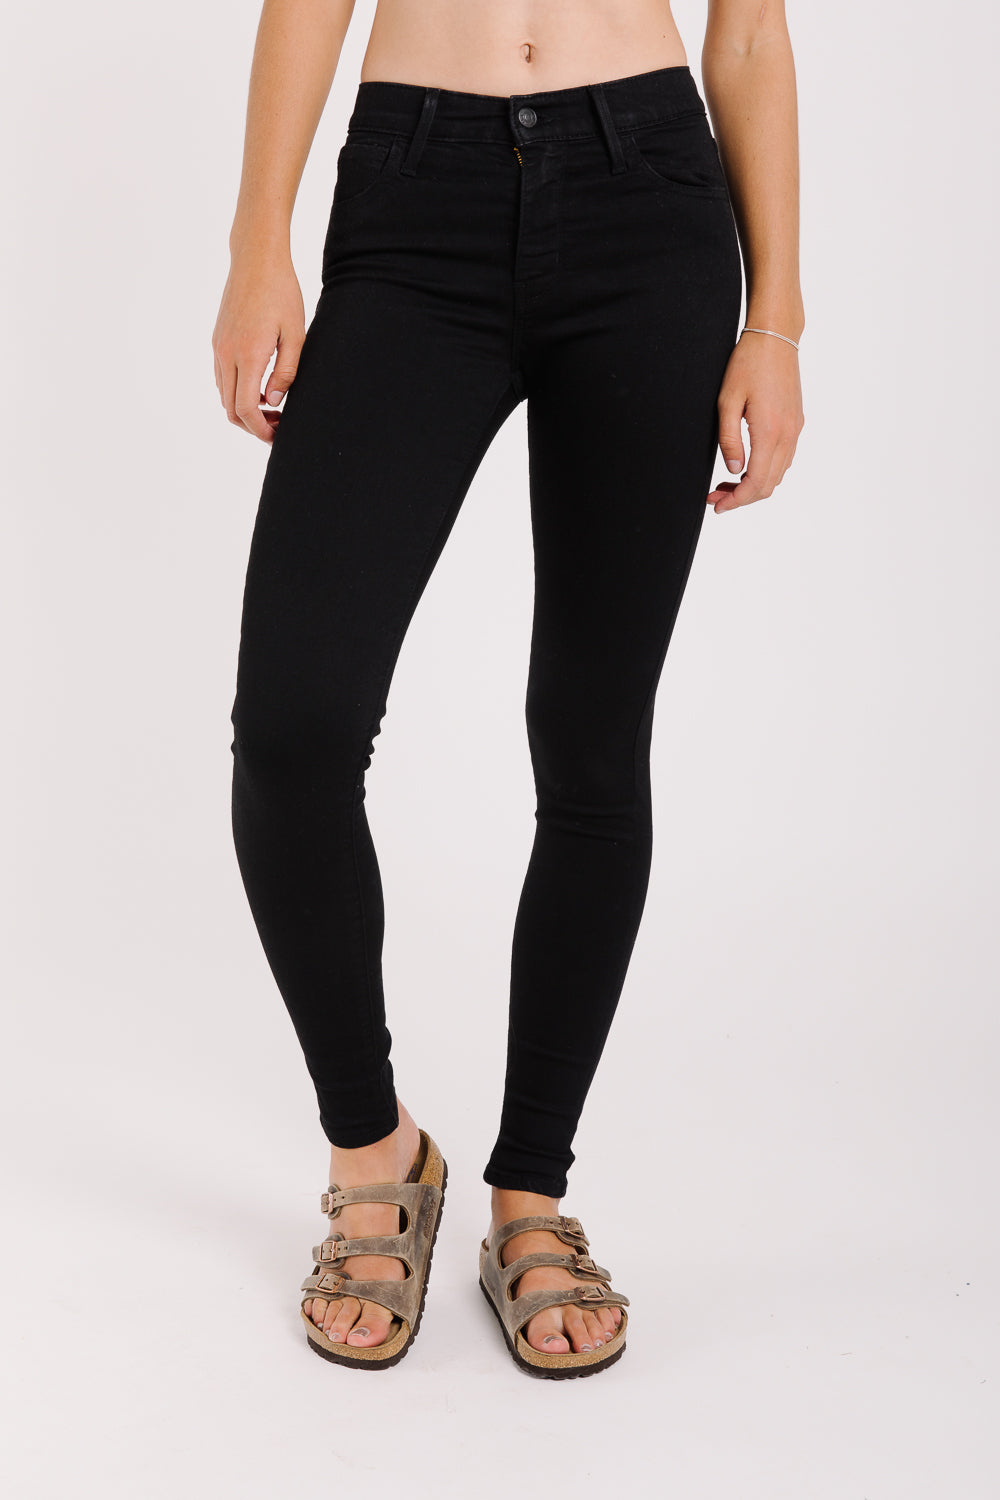 Levi's: High Rise Super Skinny Jean in Black Galaxy